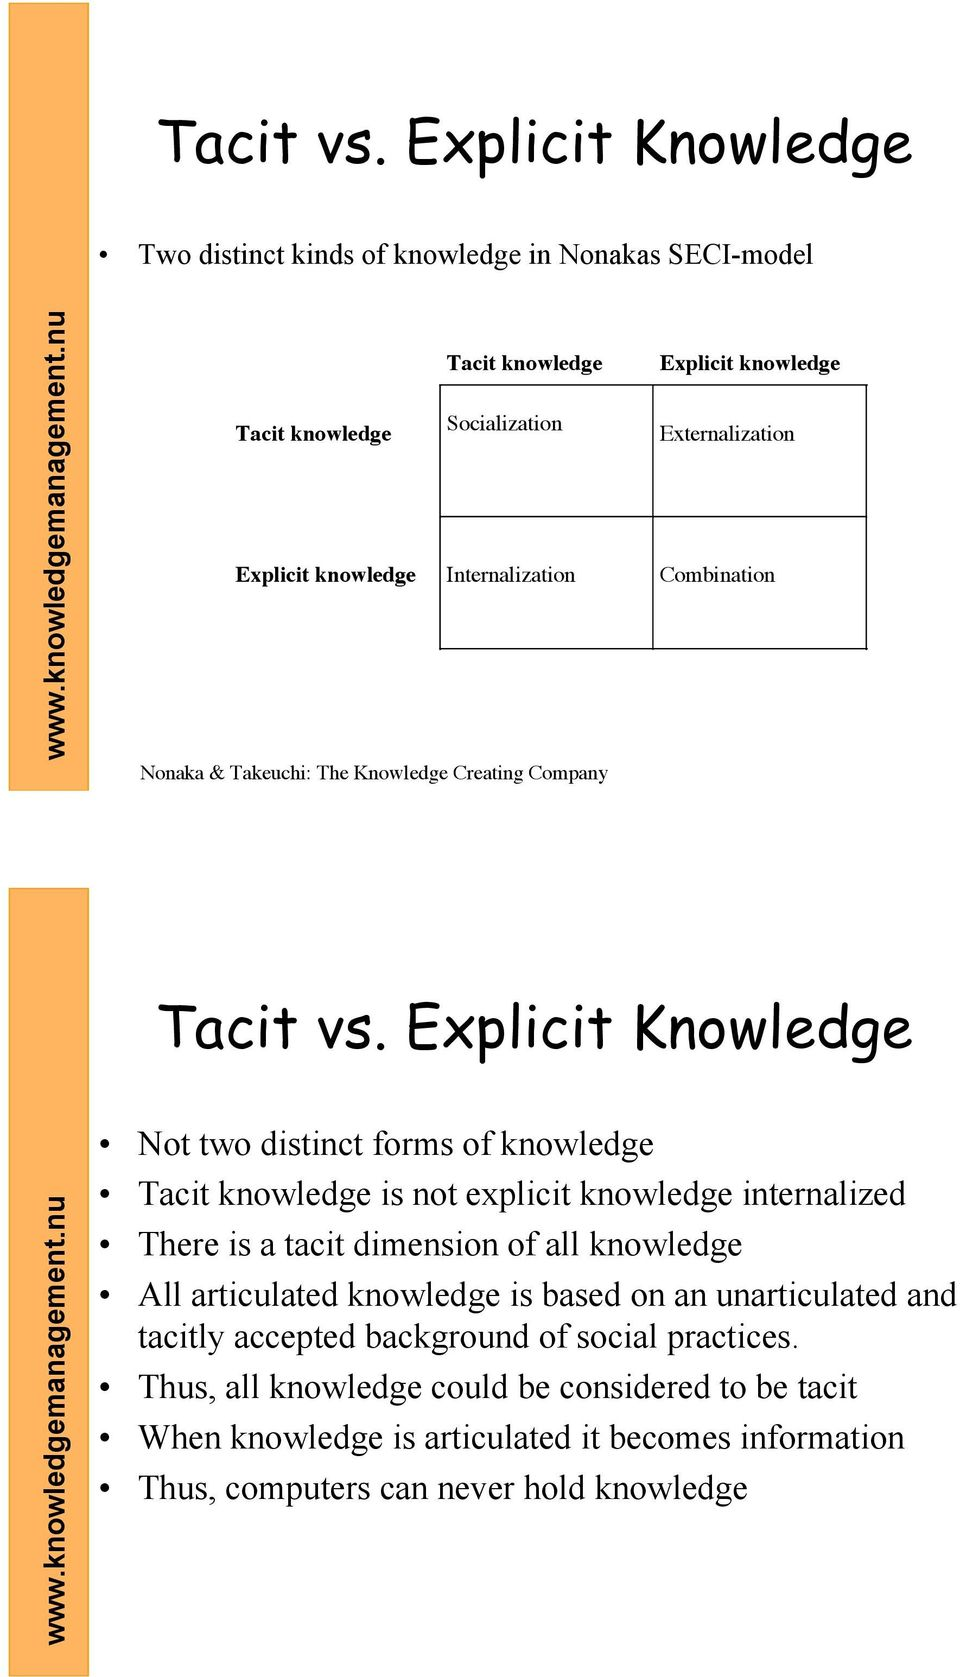 knowledge Internalization Combination Nonaka & Takeuchi: The Knowledge Creating Company  Explicit Knowledge Not two distinct forms of knowledge Tacit knowledge is not